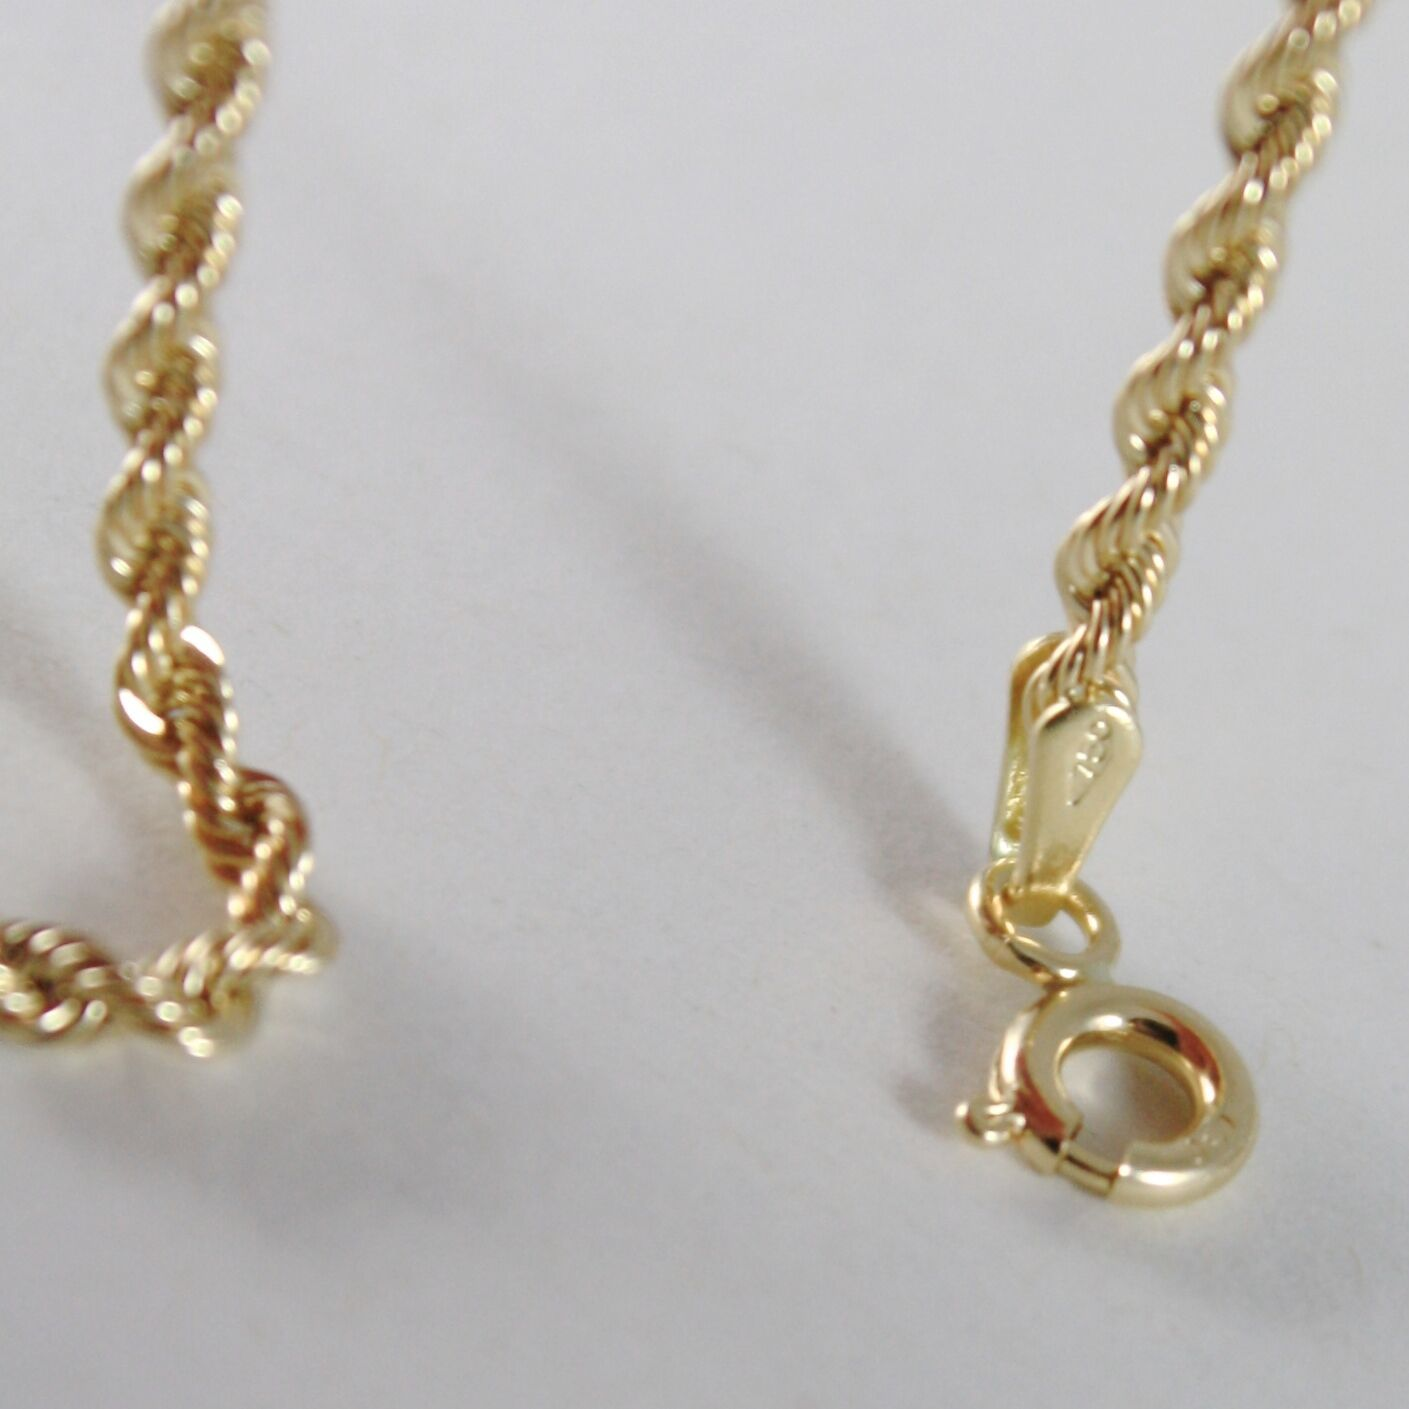 Chain a Yellow Gold Braided Rope 750 18K, 40 45 50 60 cm Thickness 2.5 MM